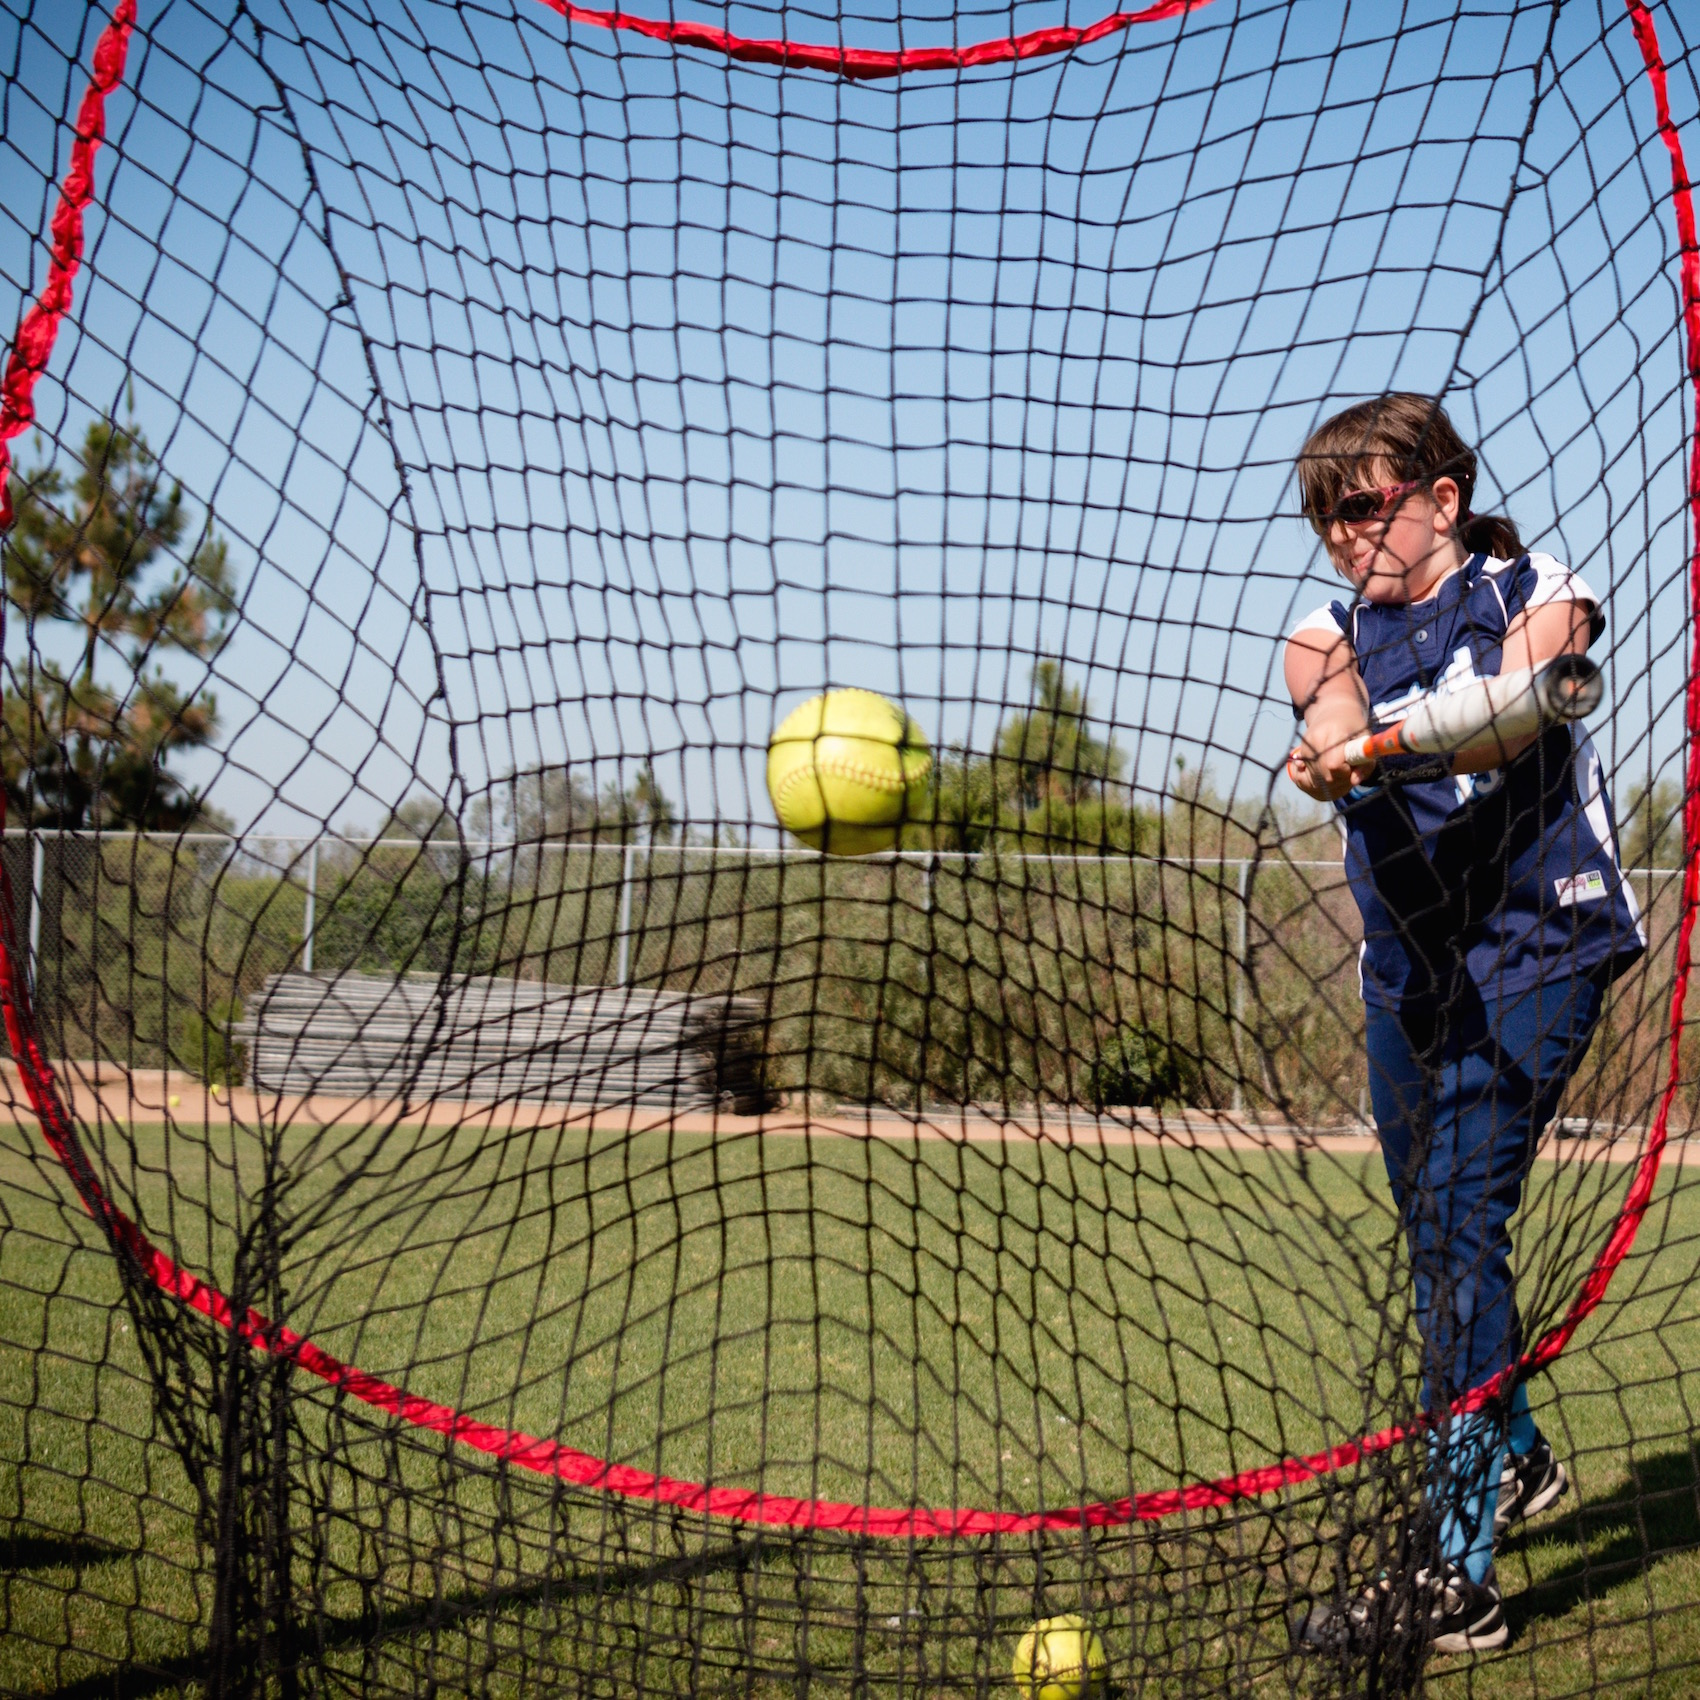 Practicing Your Swing at Home: All You Need is a Baseball Tee and Hitting Net